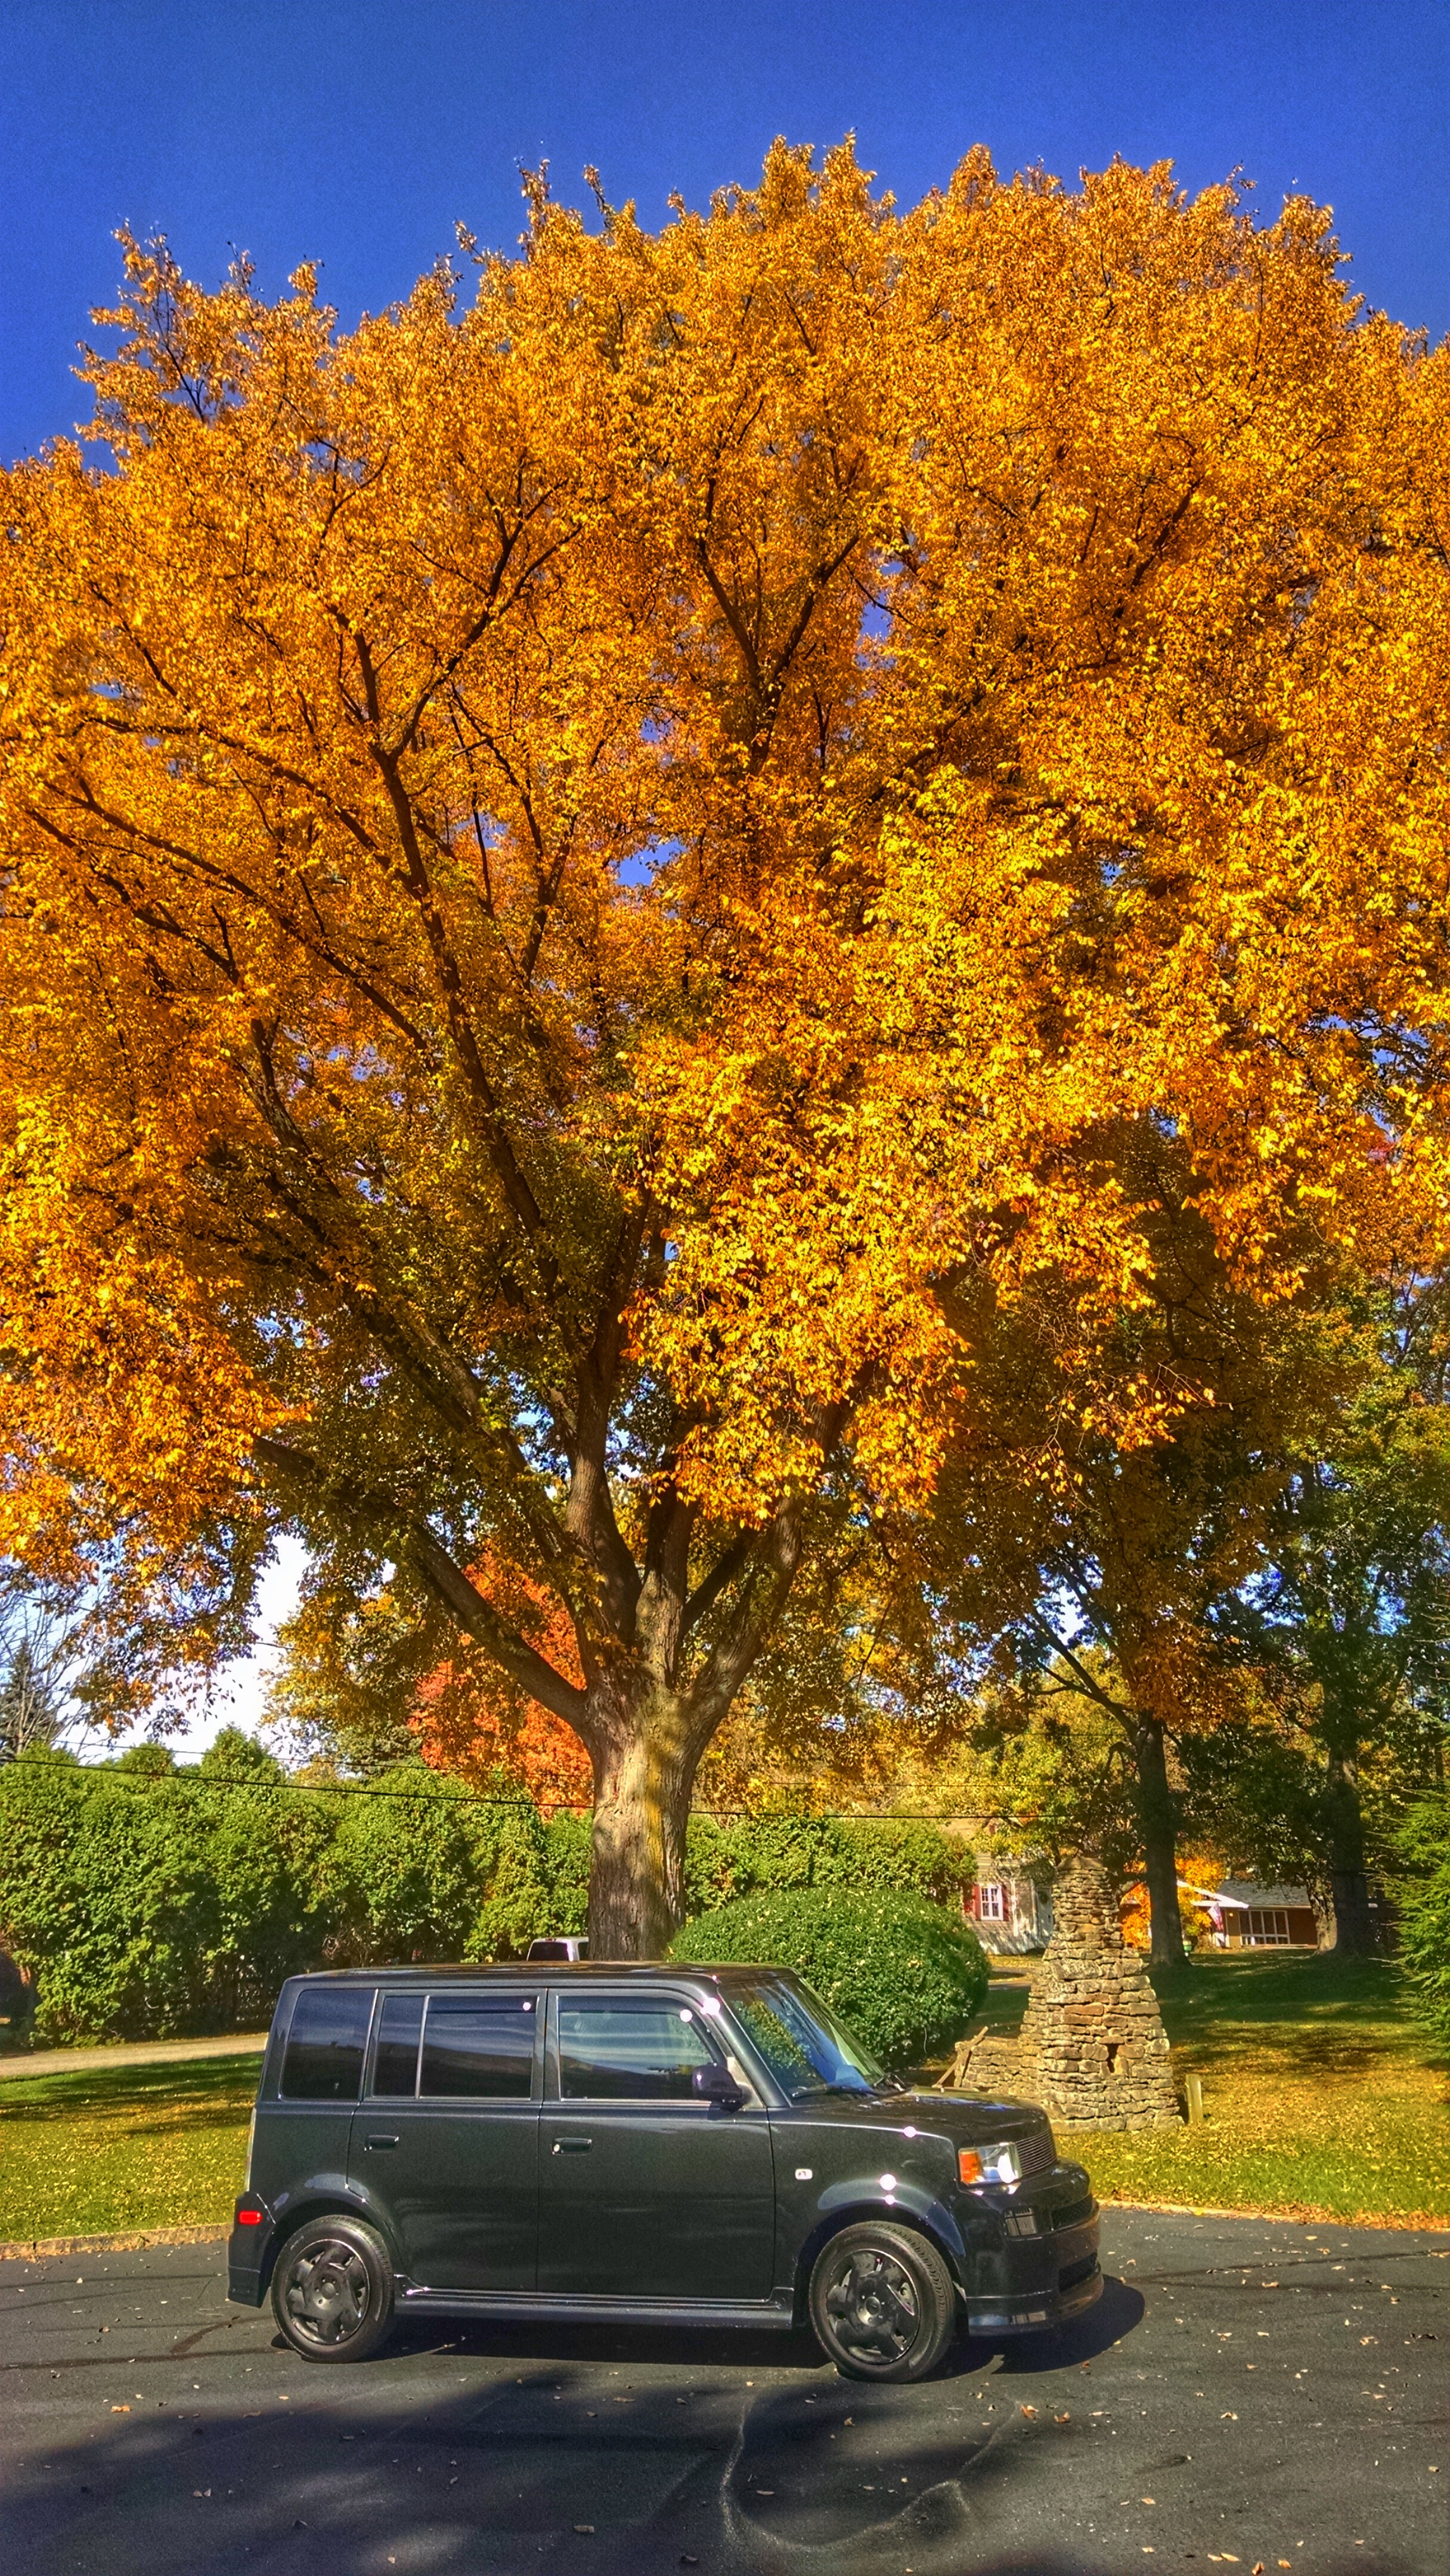 2005 Scion xB during Fall